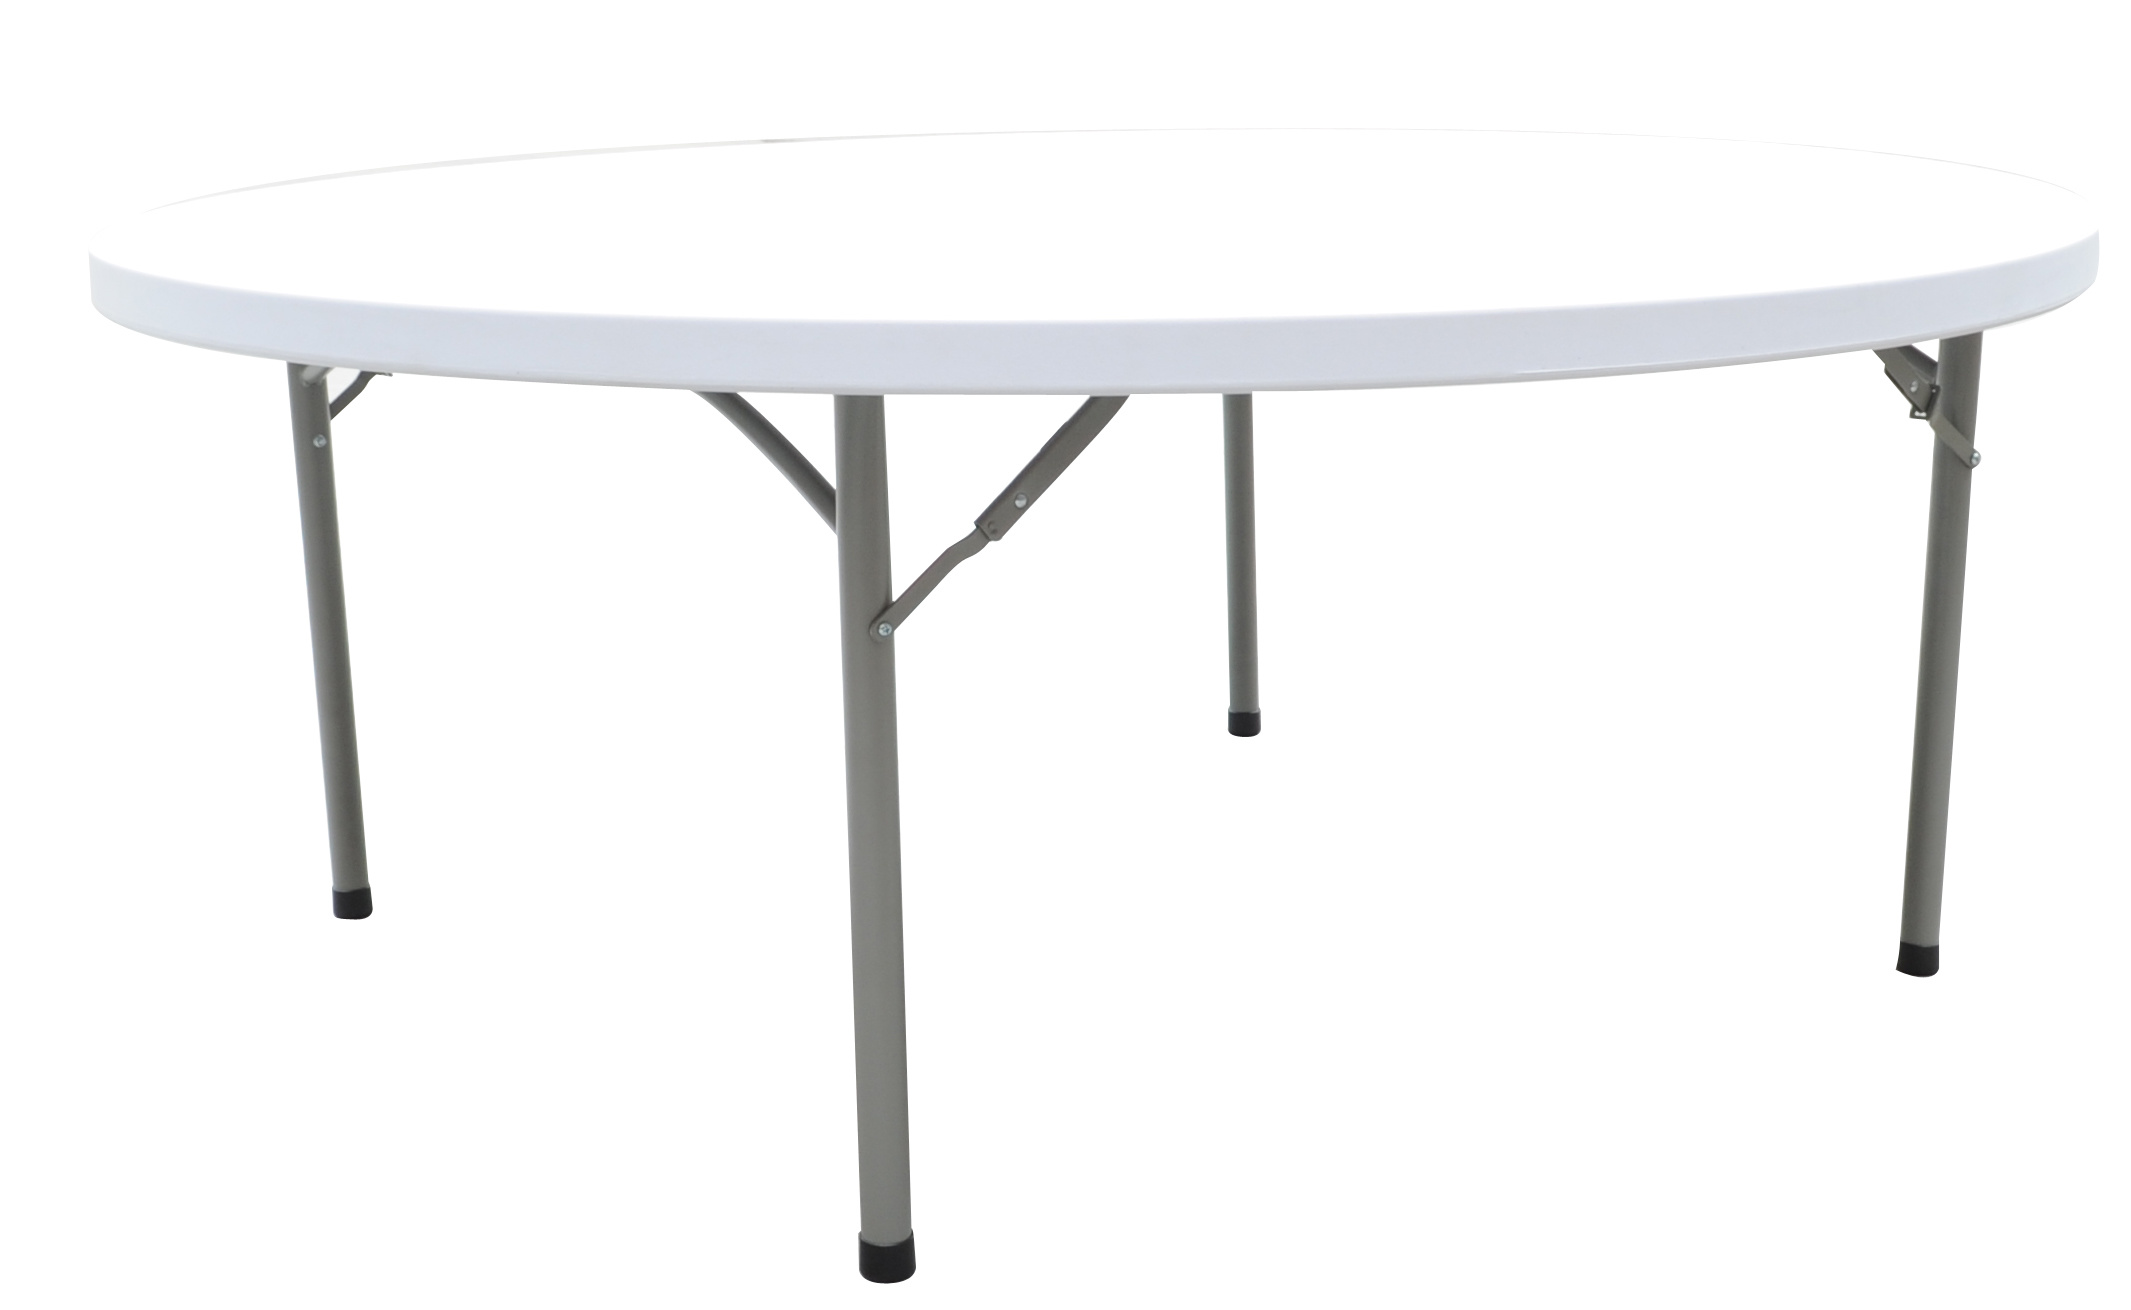 Patio Plastic Round Banquet Table (YCZ-200R)